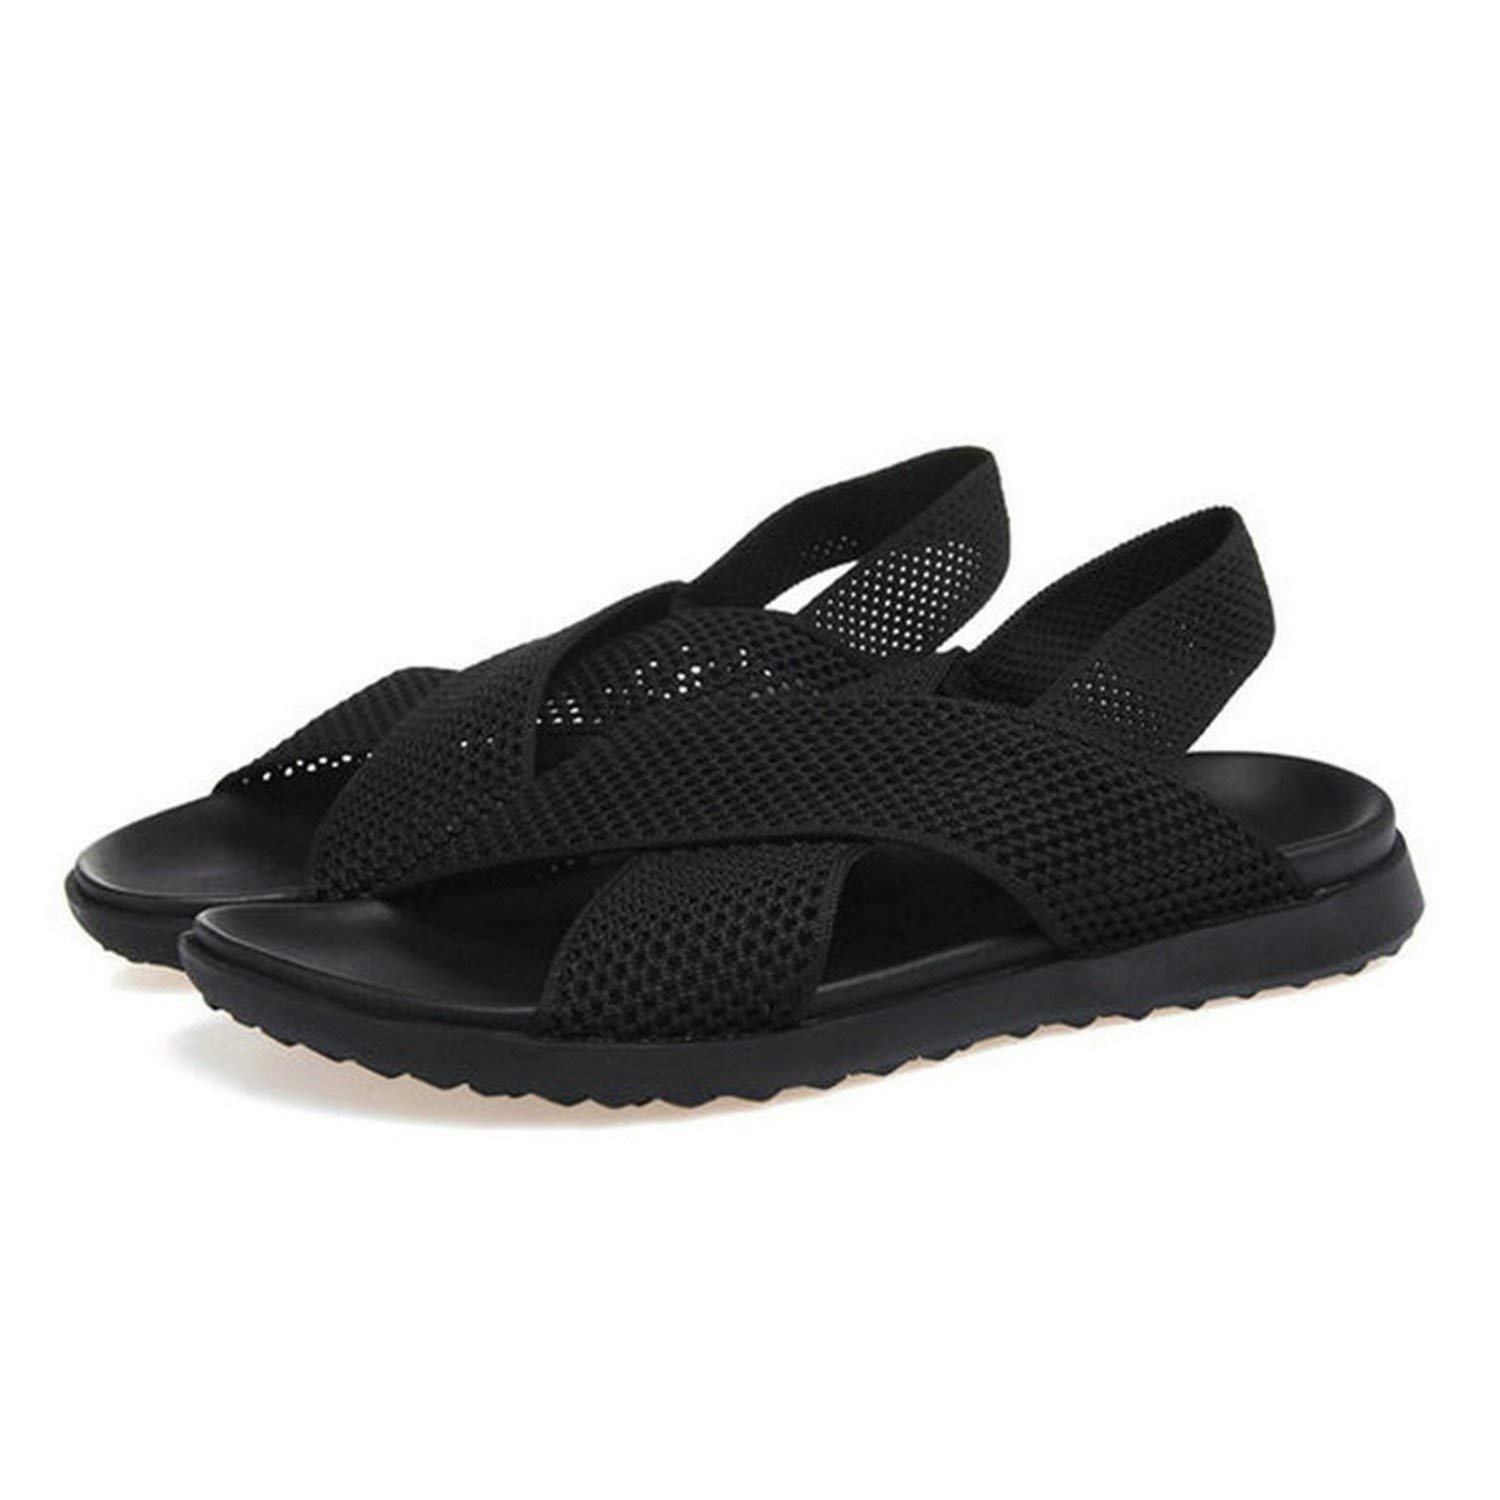 fa36288fe5cd Get Quotations · Athanie New Mens Sandals Brand Sandals Summer Shoes Mesh  Handmade Black Slipper Italy Designer Beach Sandals